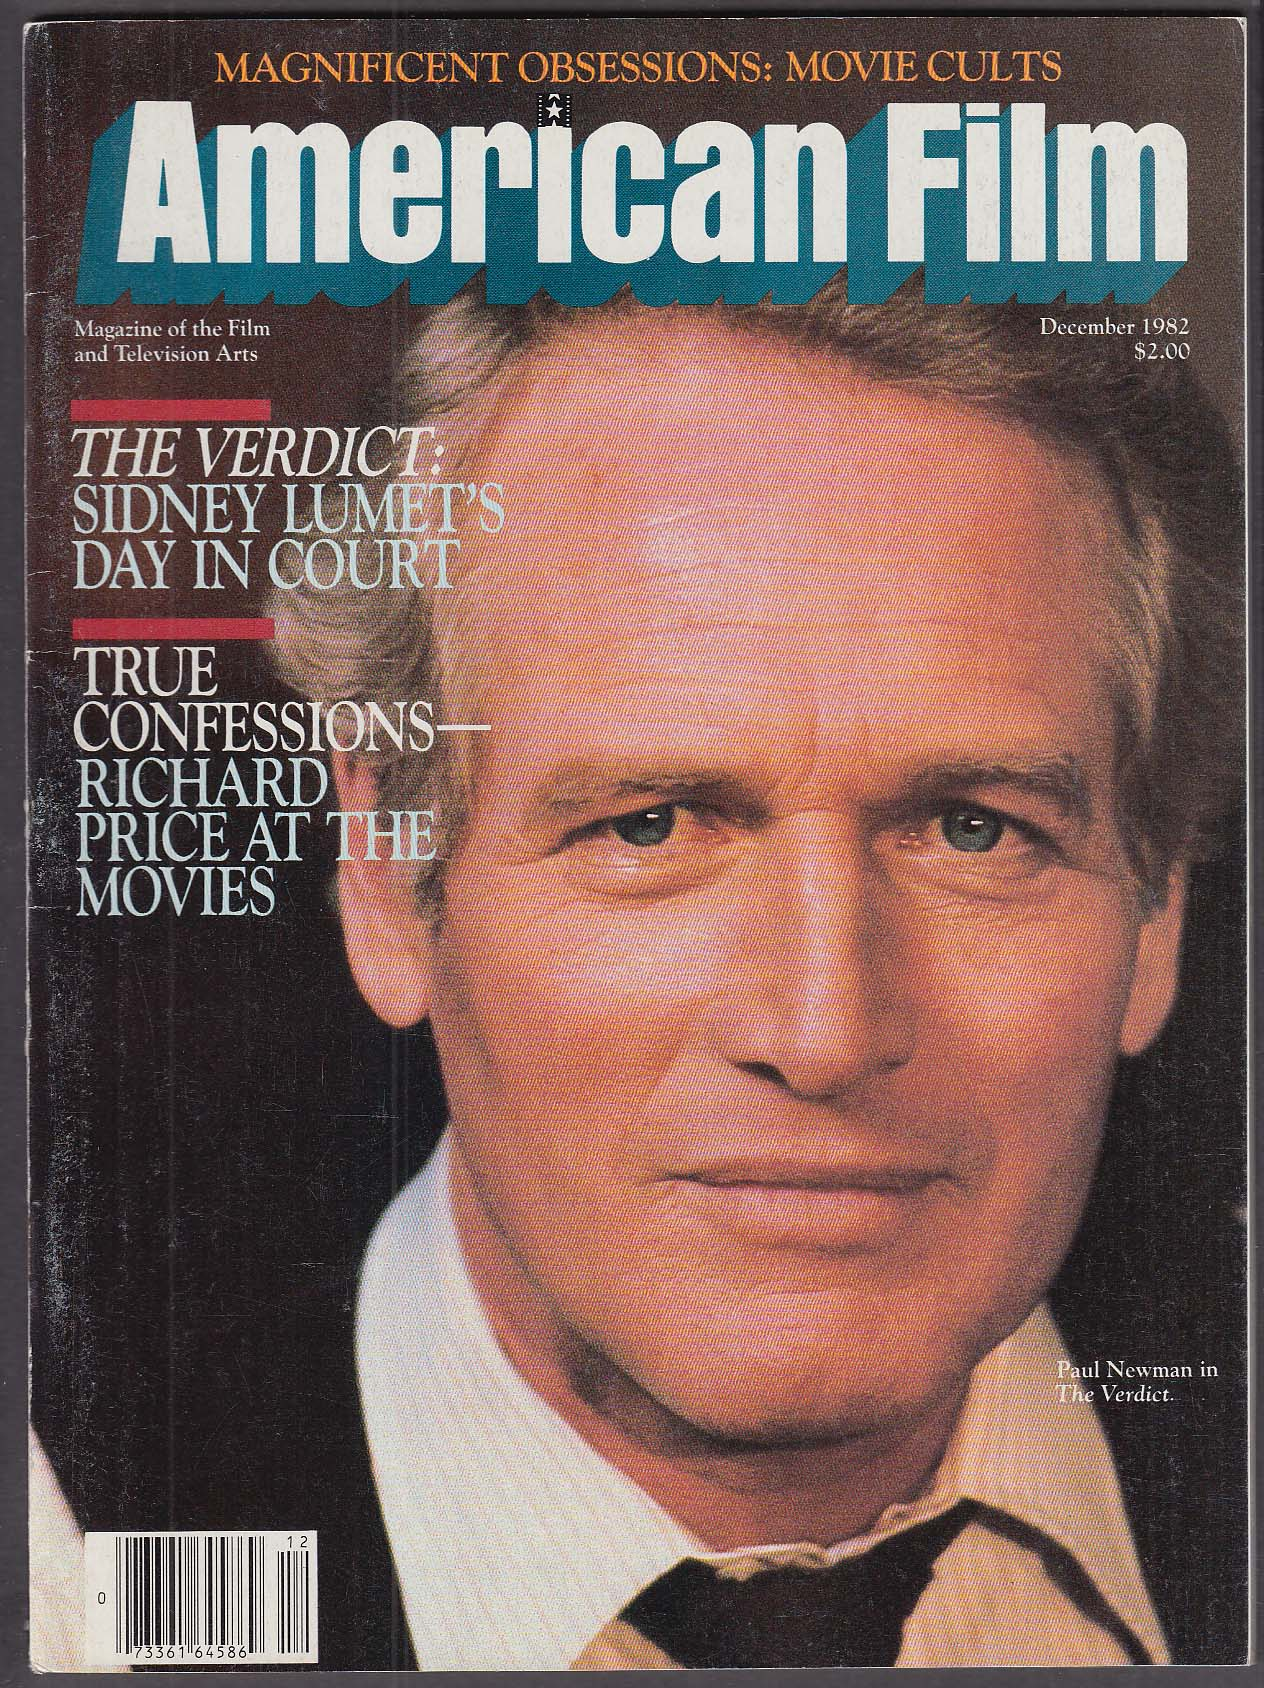 Image for AMERICAN FILM Paul Newman The Verdict Richard Price at the Movies 12 1982